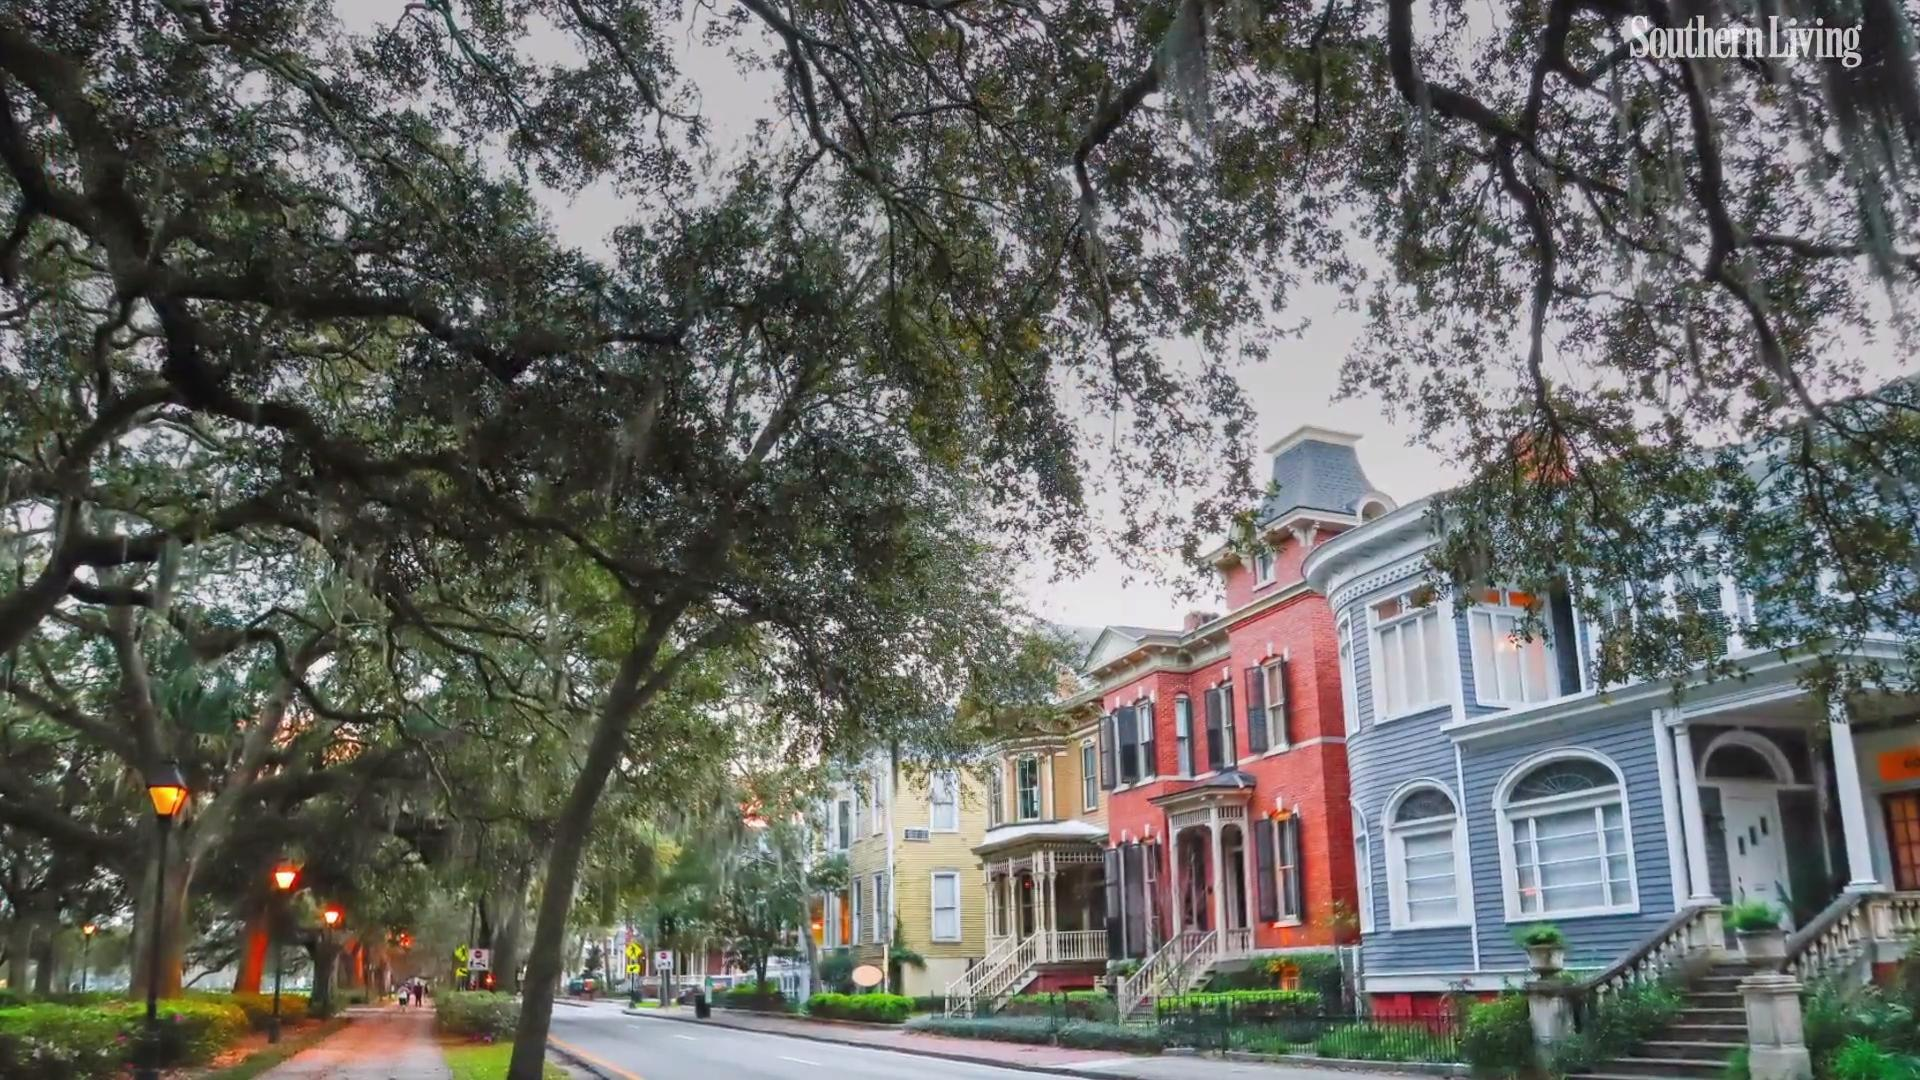 Properties in These Southern Cities can Yield High Returns on Investment